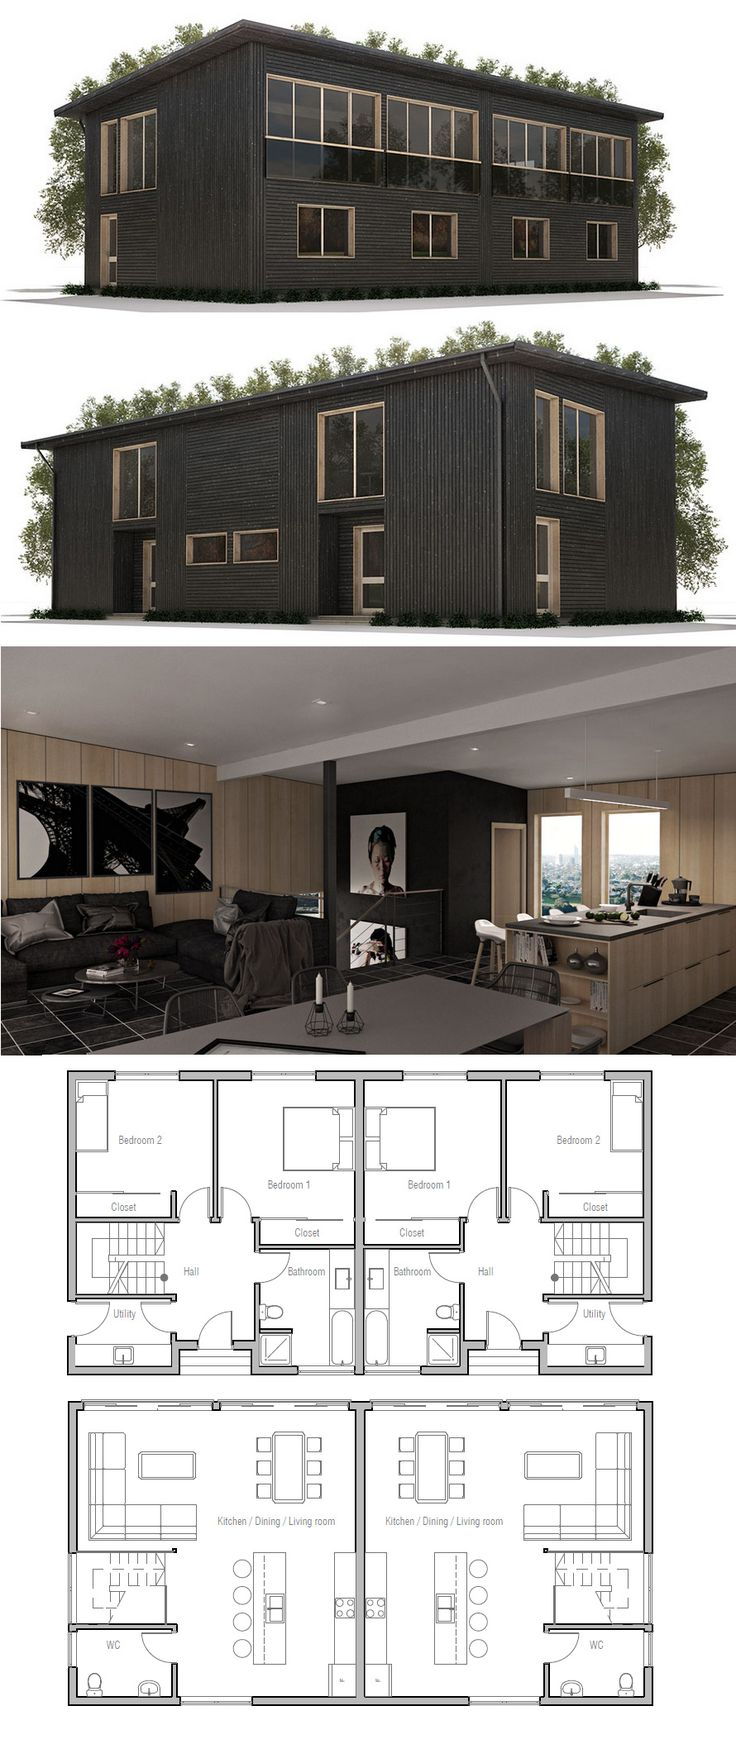 ^ 1000+ ideas about Grundriss Mehrfamilienhaus on Pinterest arhus ...